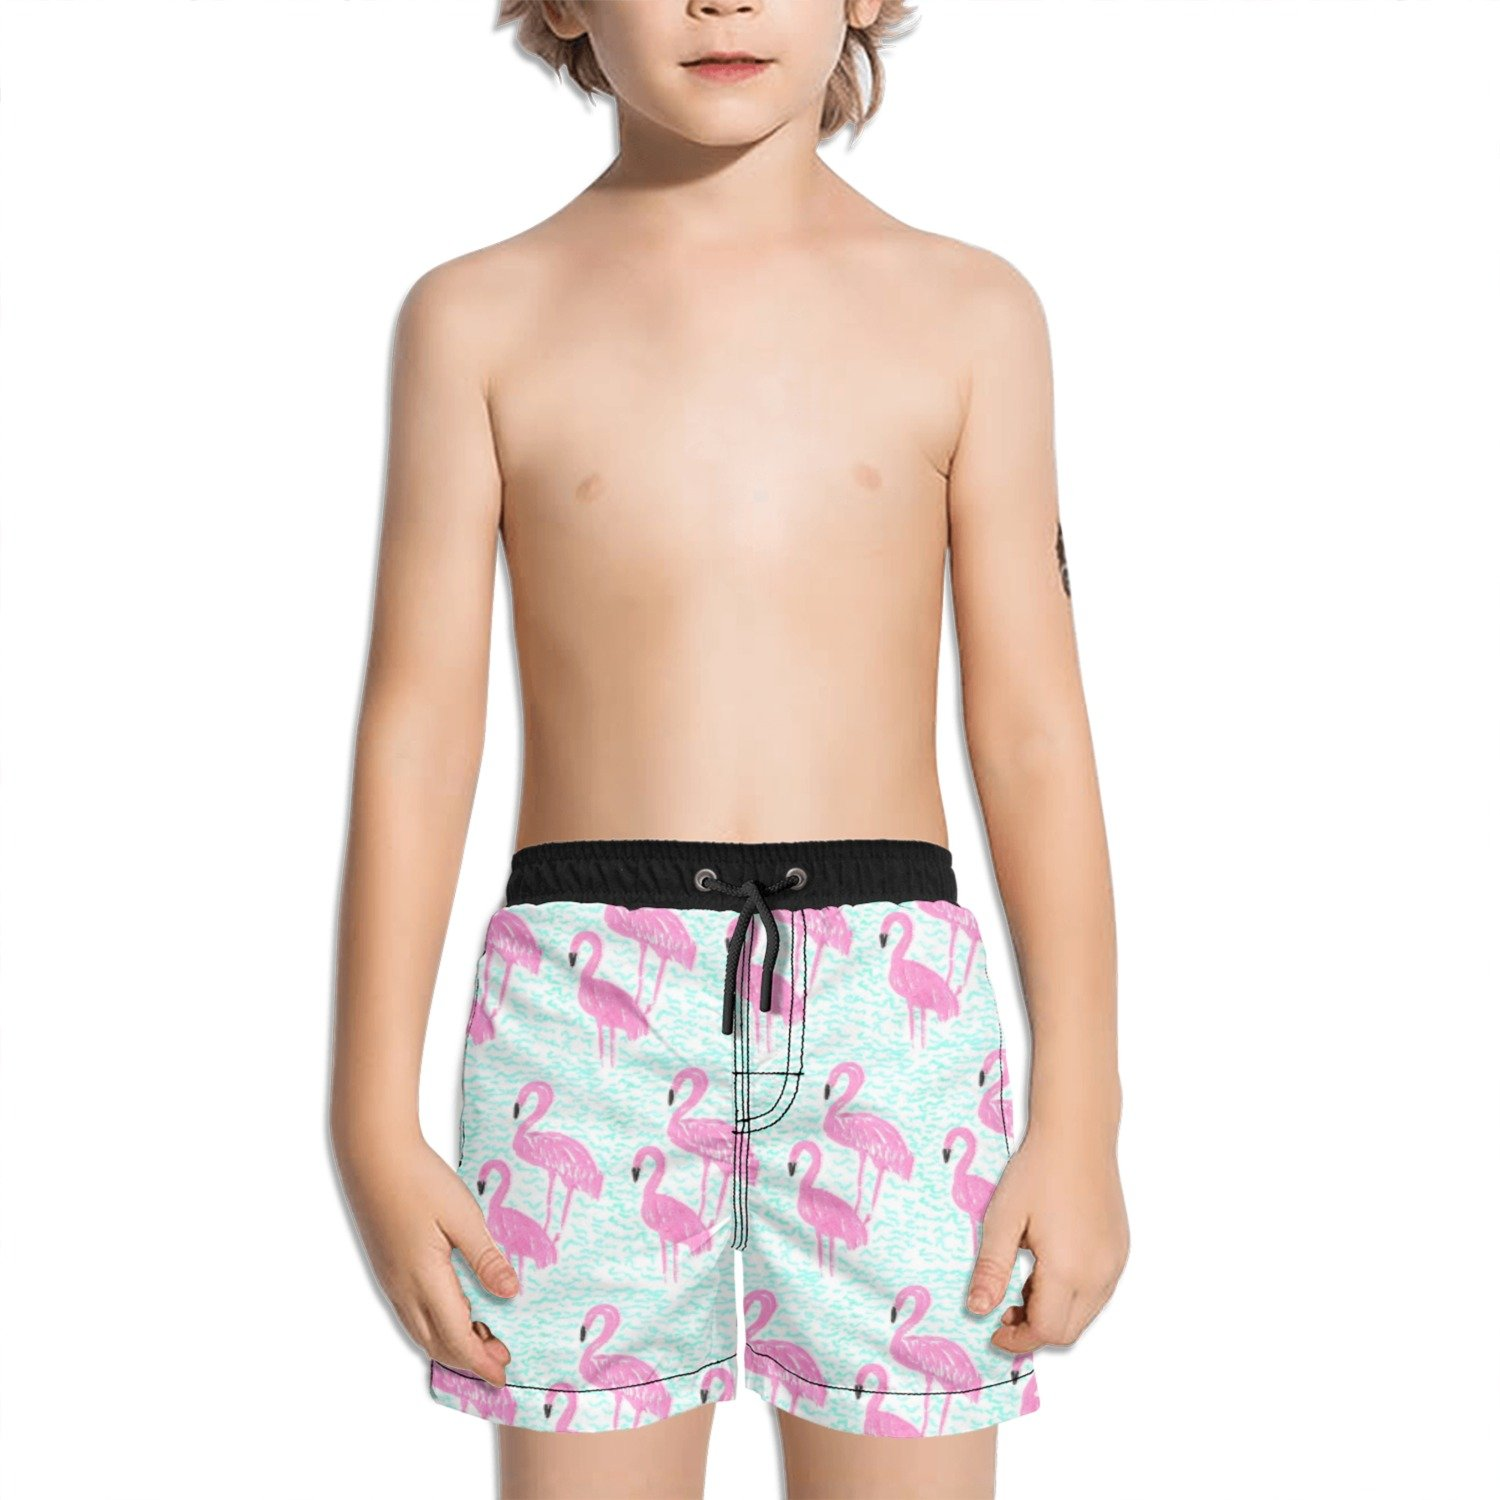 Trum Namii Boys Quick Dry Swim Trunks Pink Flamingo River Shorts